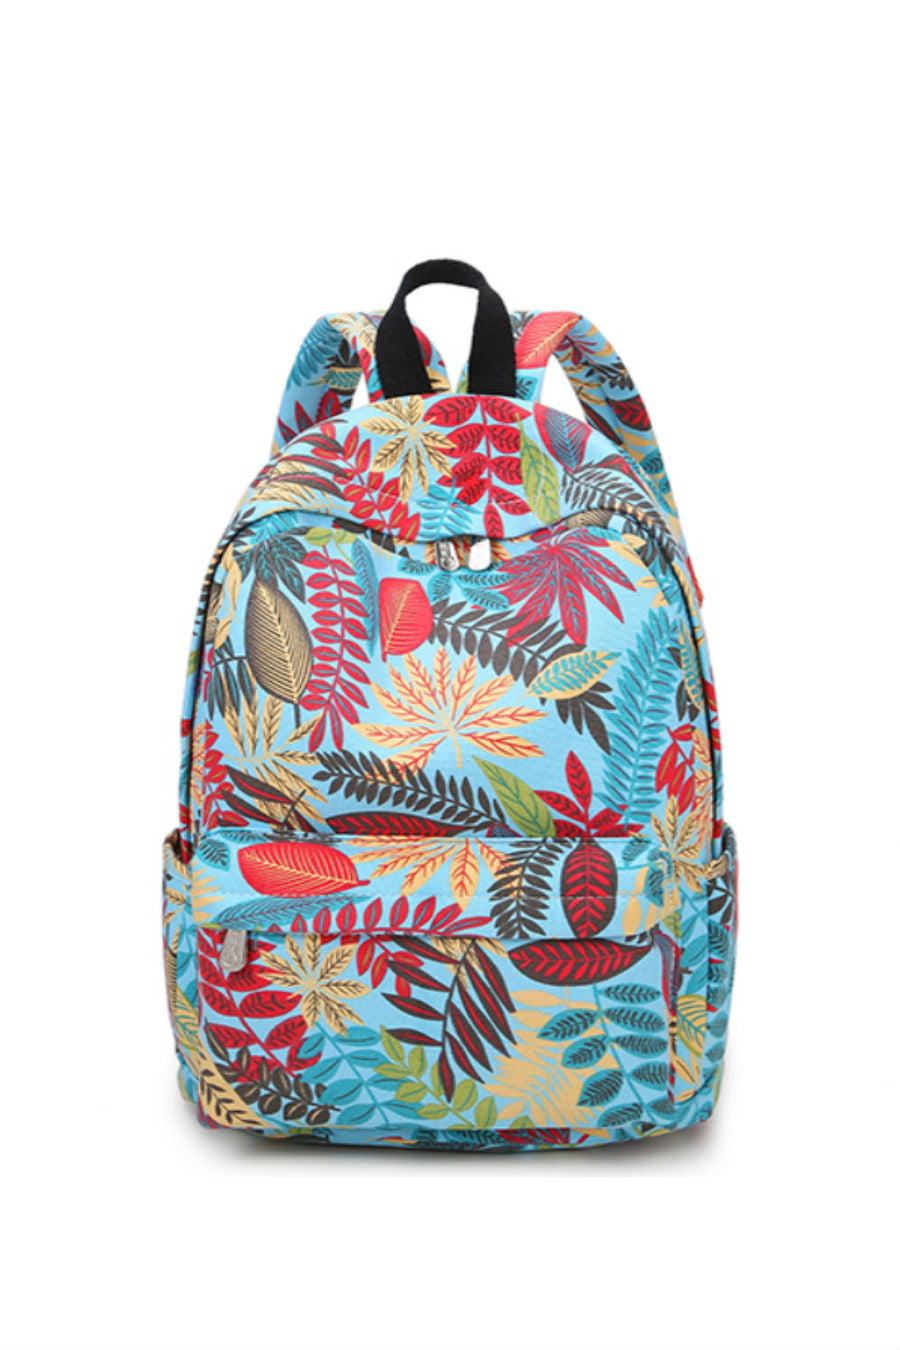 90s Retro Printed Backpack